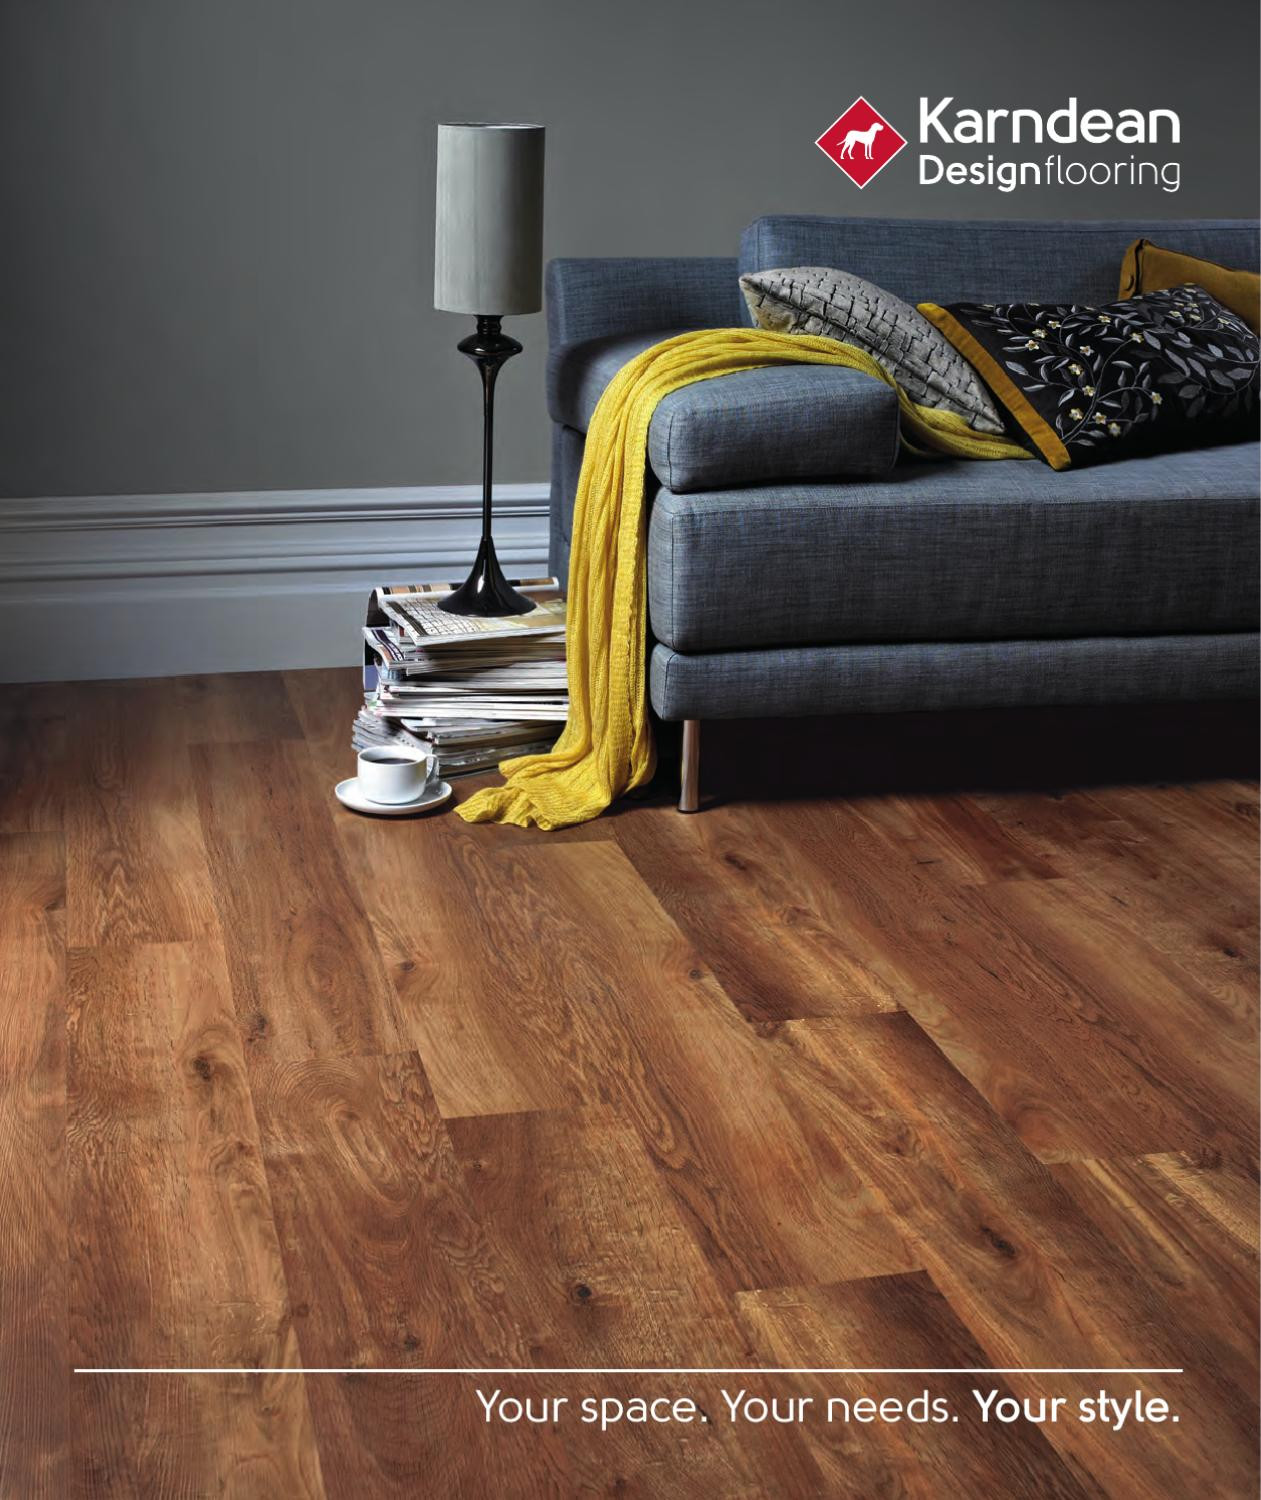 jatoba hardwood flooring canada of karndean by grupo aura issuu throughout page 1